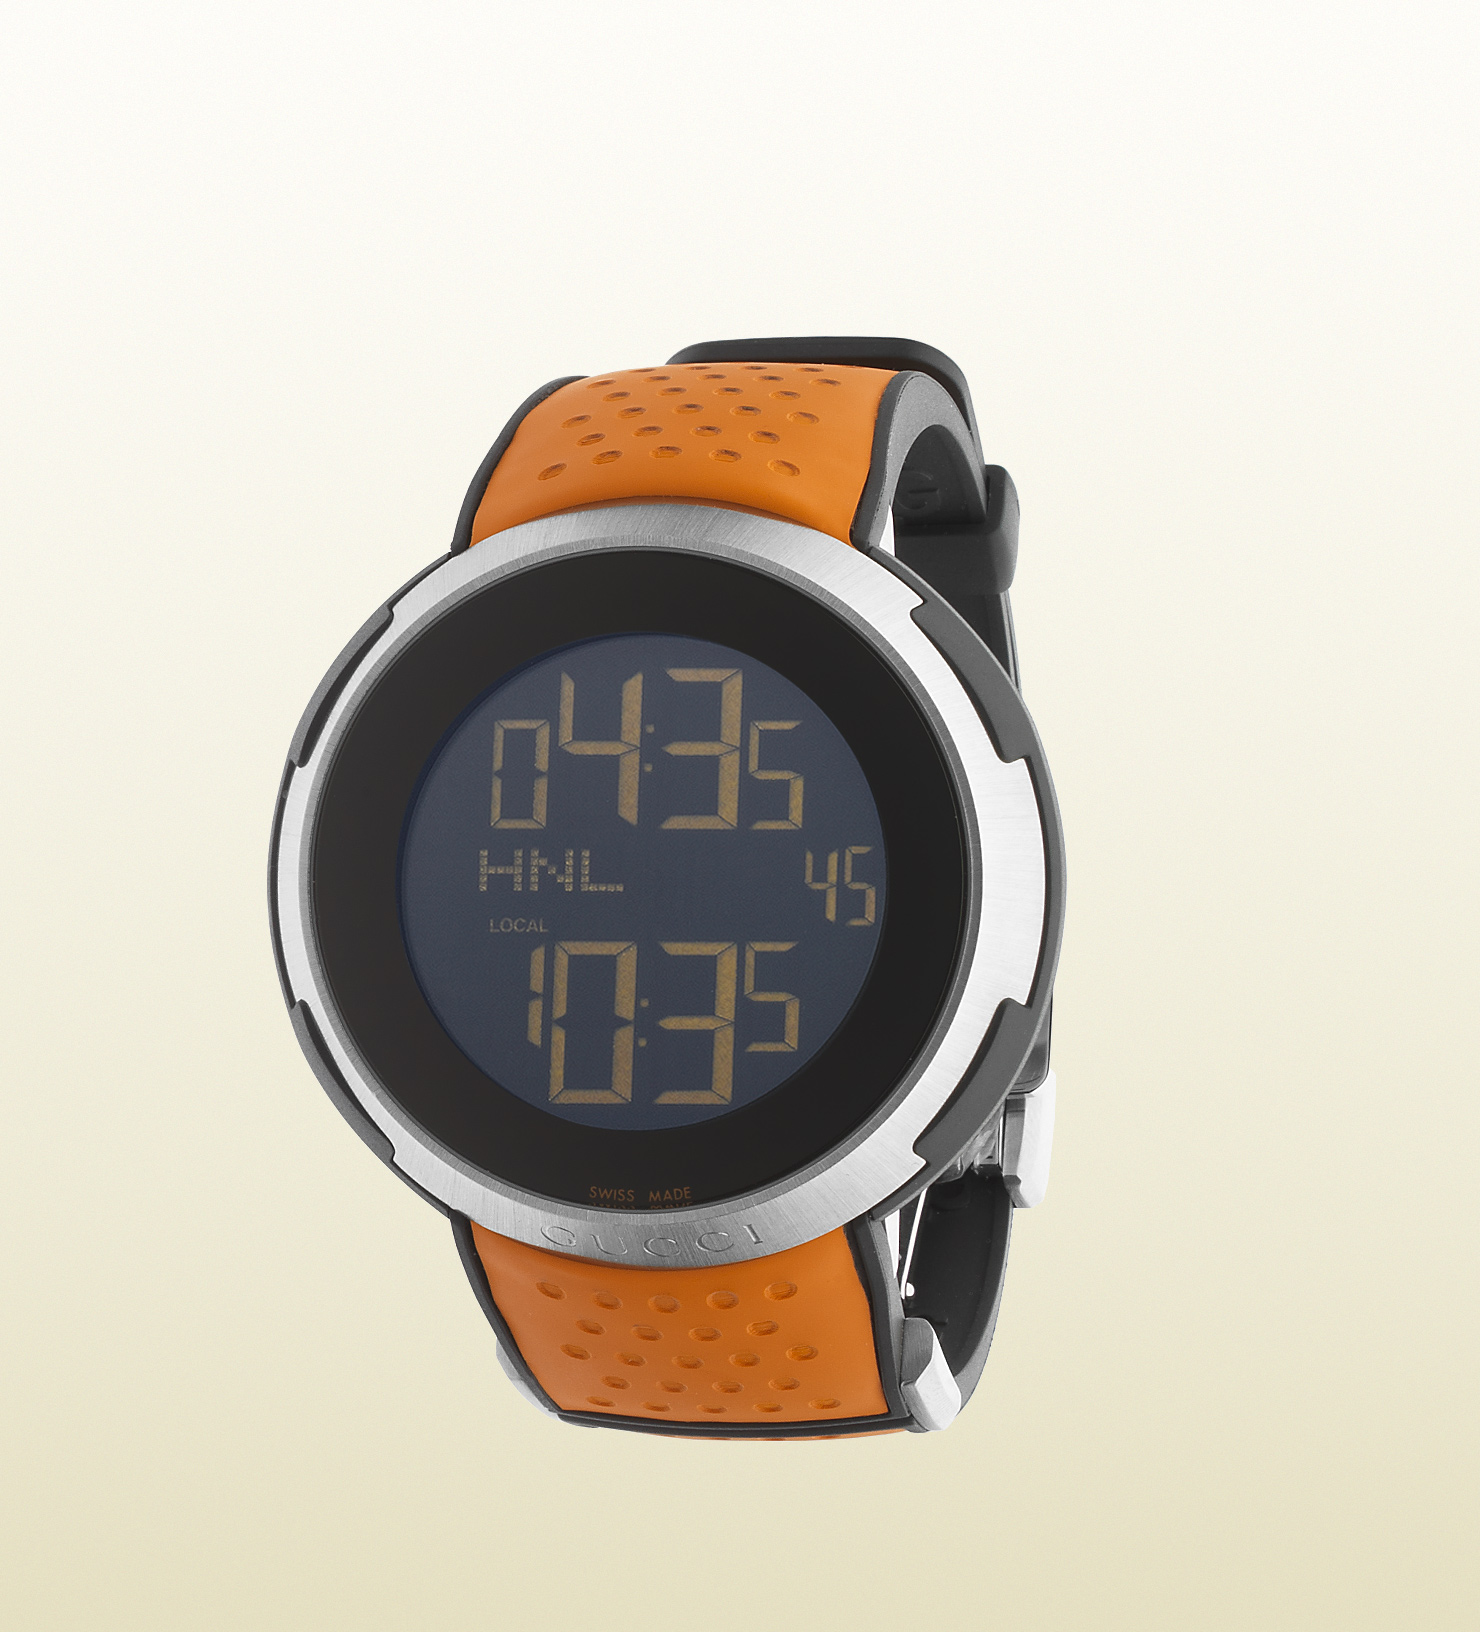 5ac3e863015 Lyst - Gucci I- Stainless Steel And Rubber Watch in Orange for Men